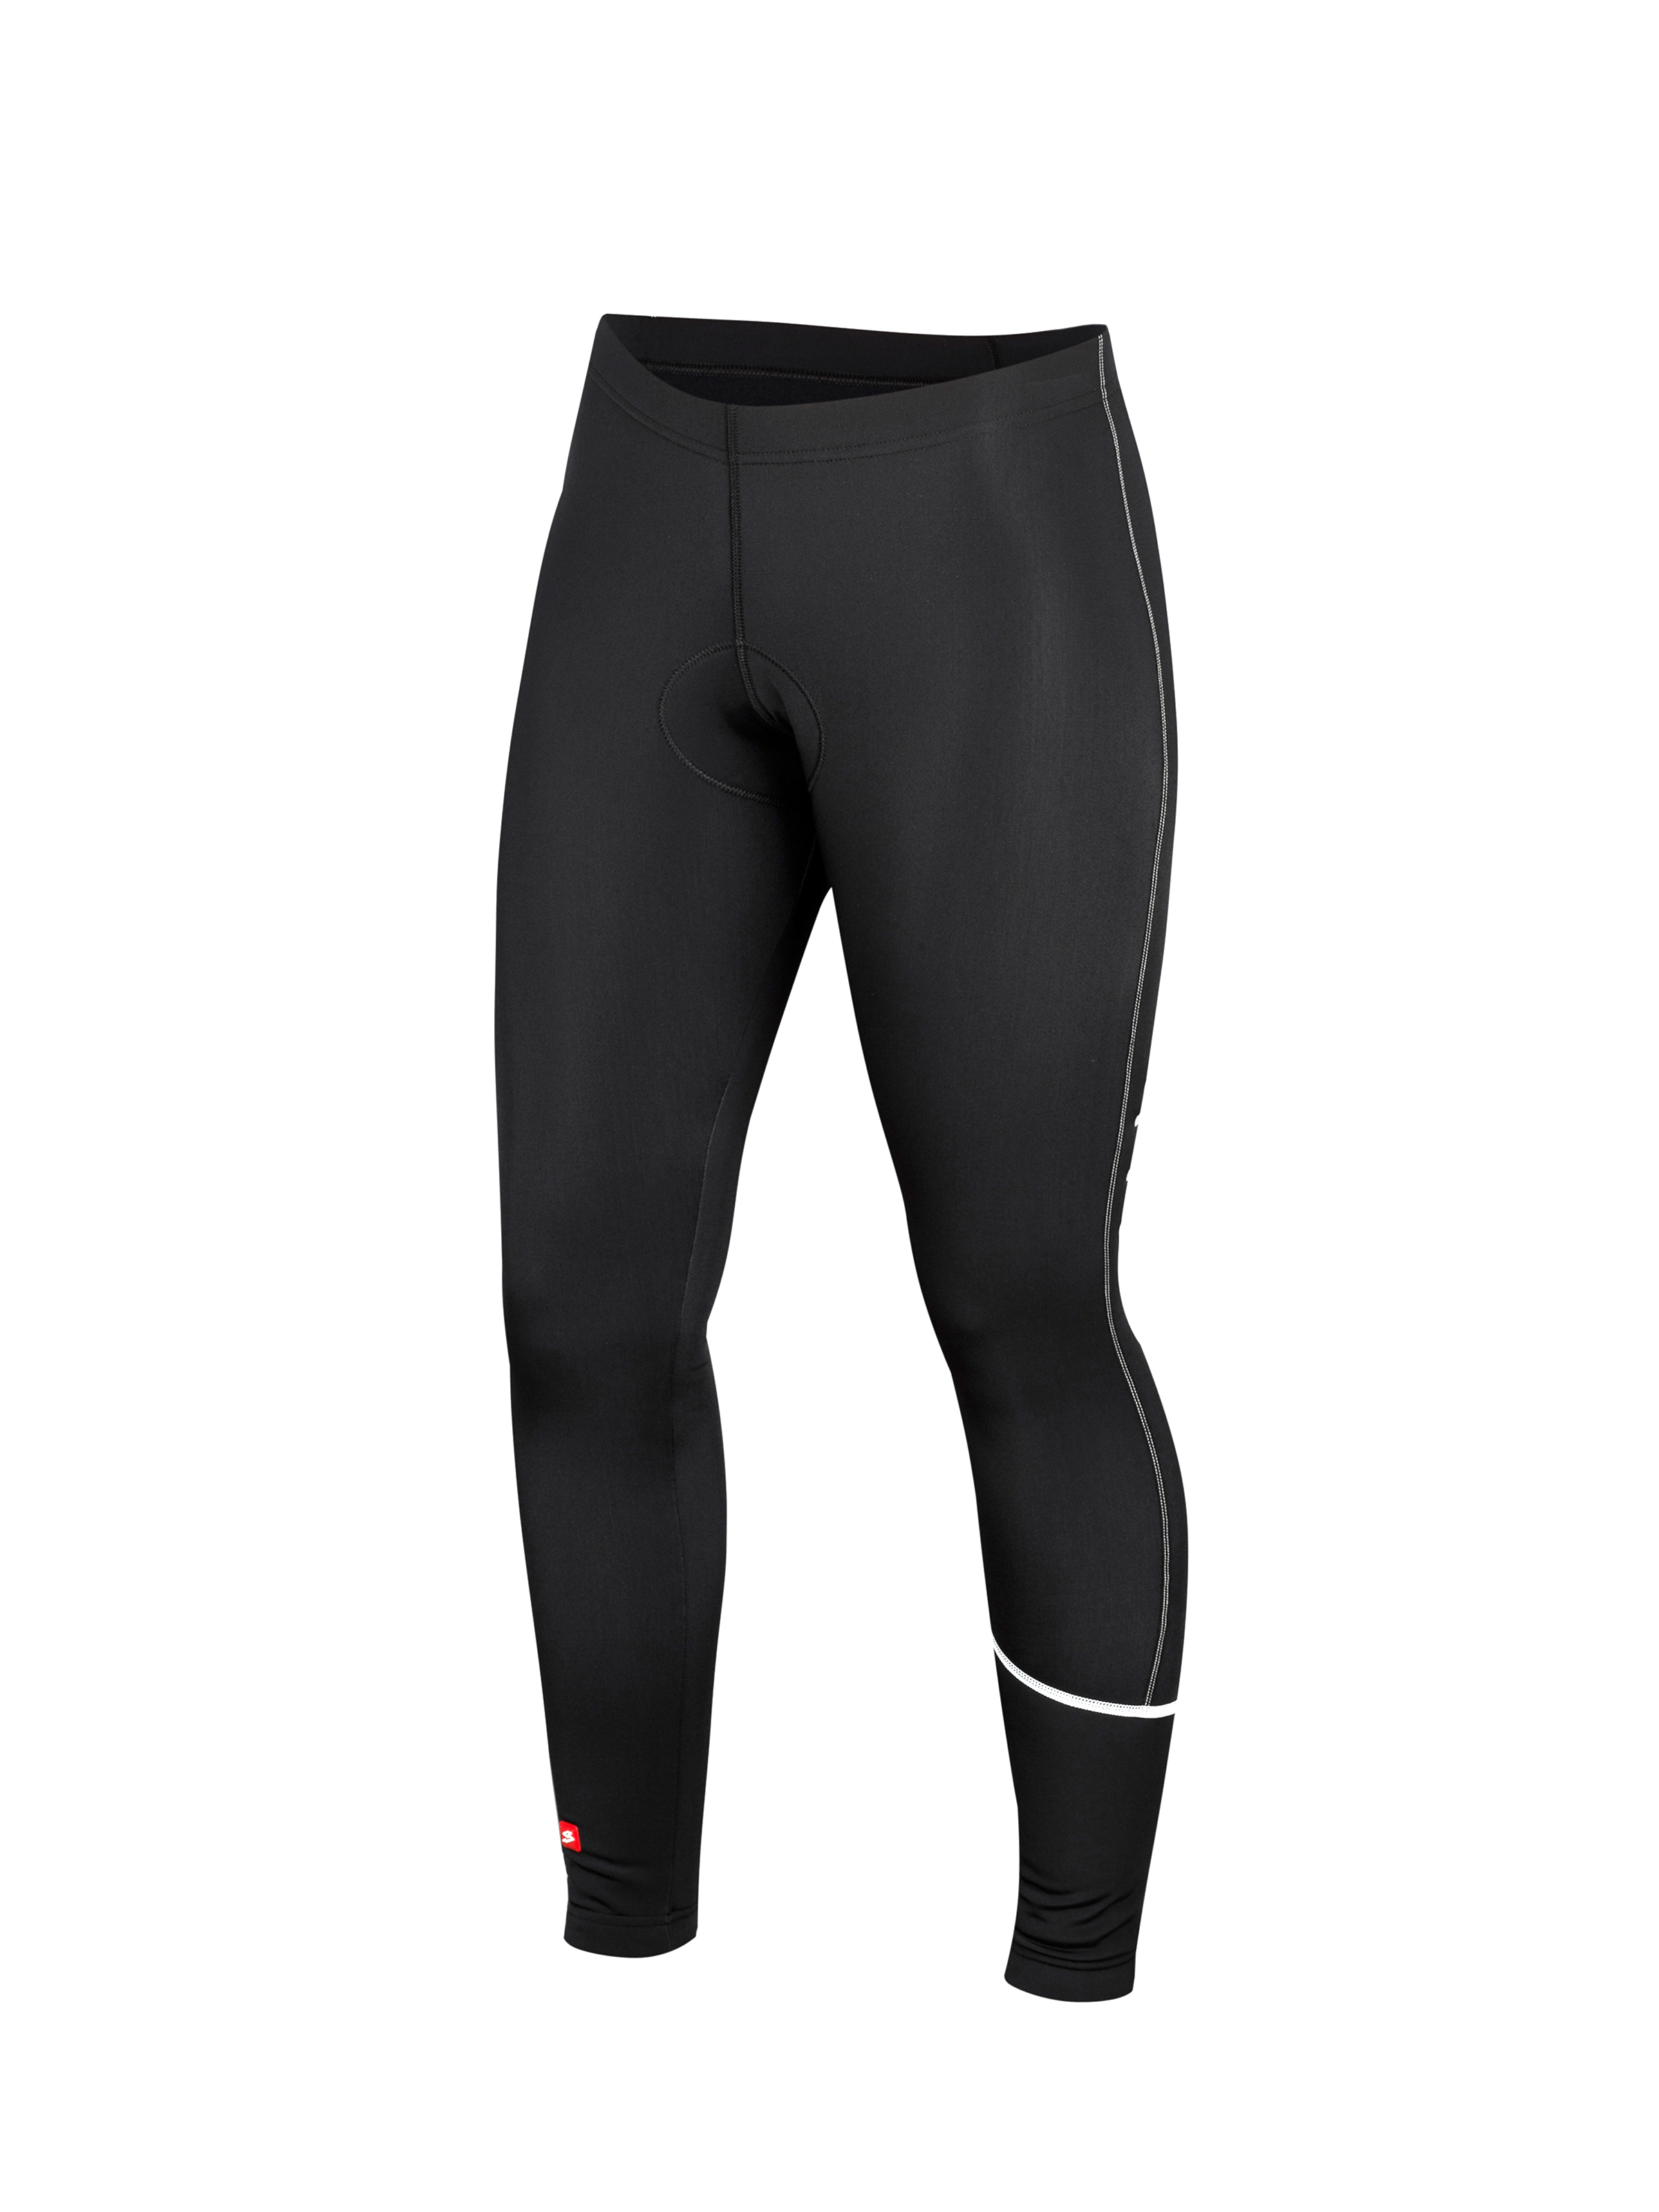 Spiuk Sportline Culote Largo S/t Anatomic Mujer Negro